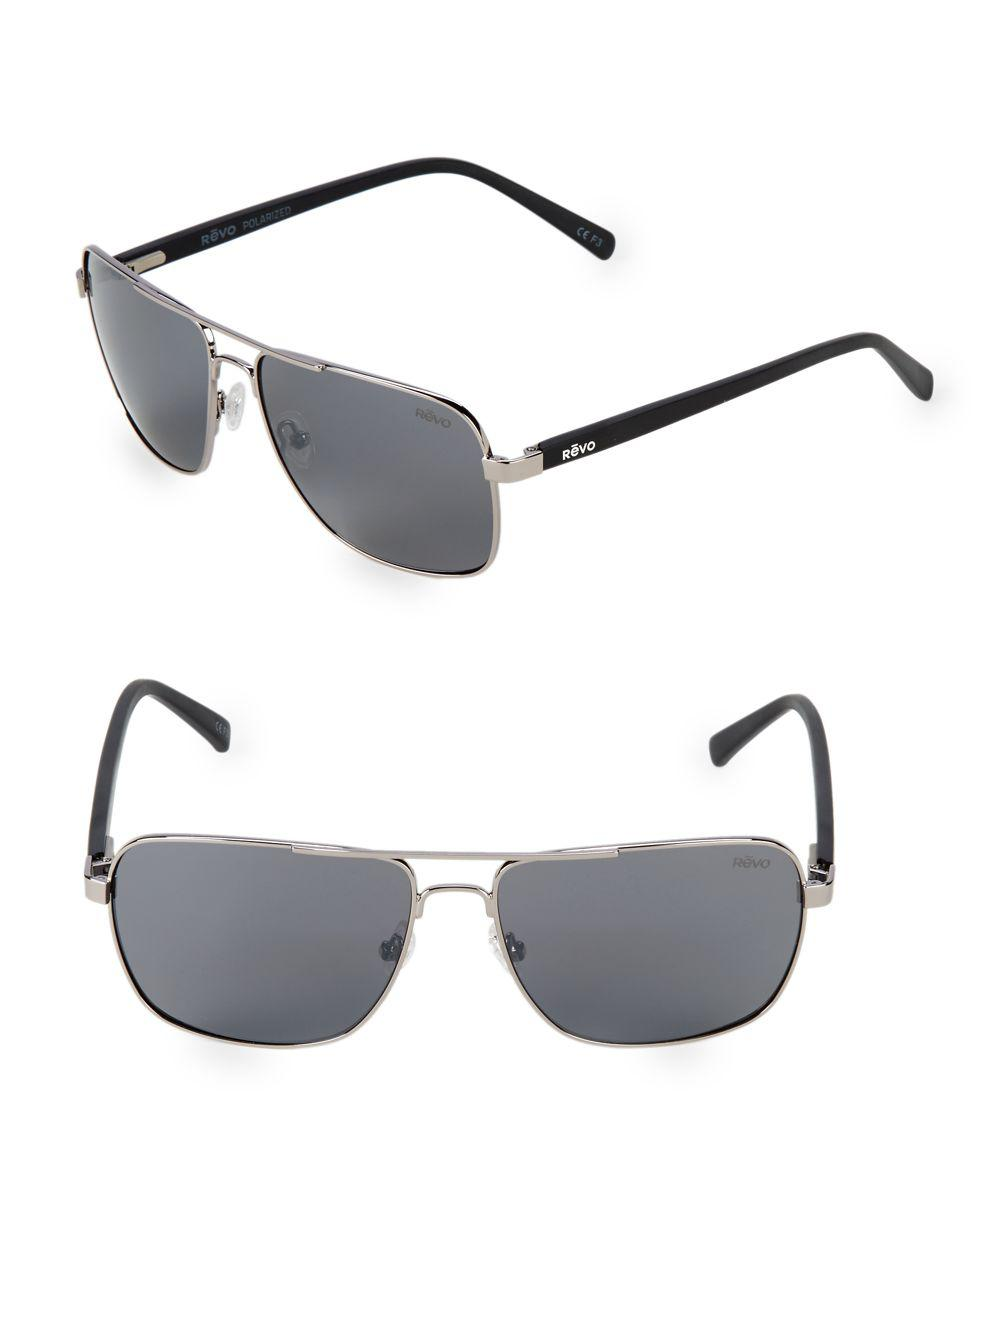 337432e1b40 Lyst - Revo 59mm Aviator Sunglasses in Metallic for Men